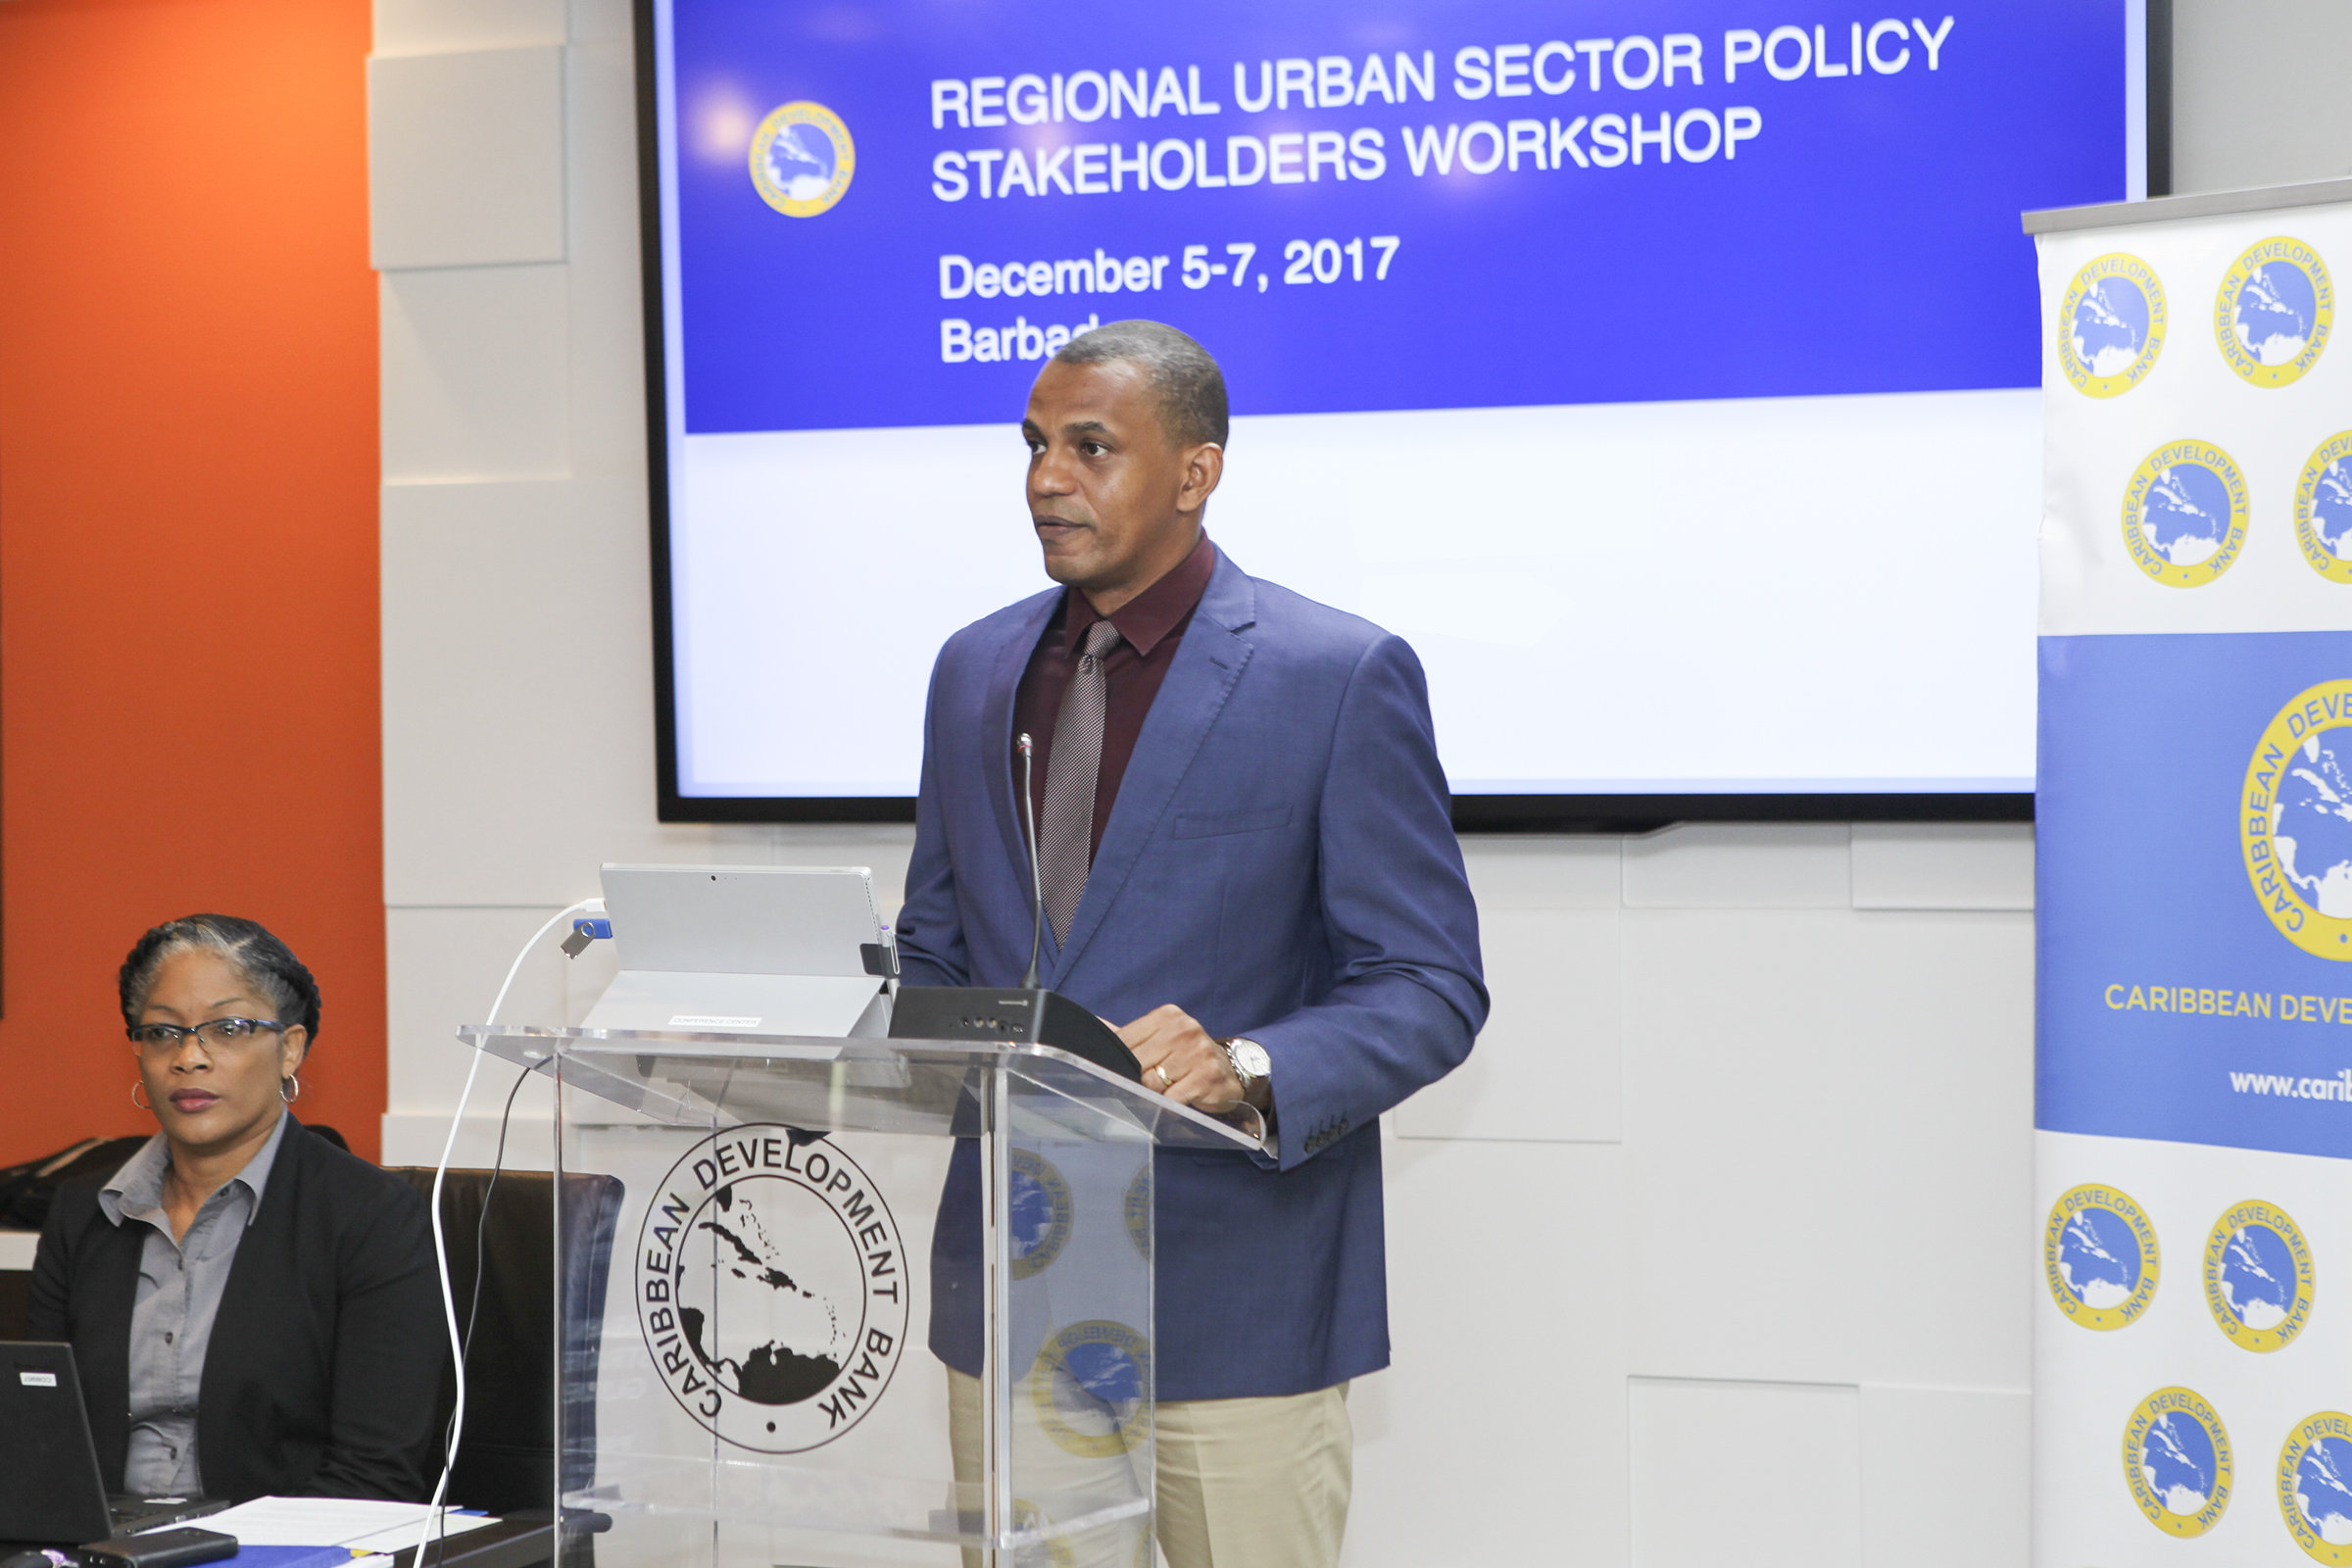 Daniel Best, Director of Projects, CDB, speaks at the opening of the Regional Urban Sector Policy Stakeholders Workshop on December 5, 2017. Looking on is Sharon Griffith, Operations Officer, CDB.